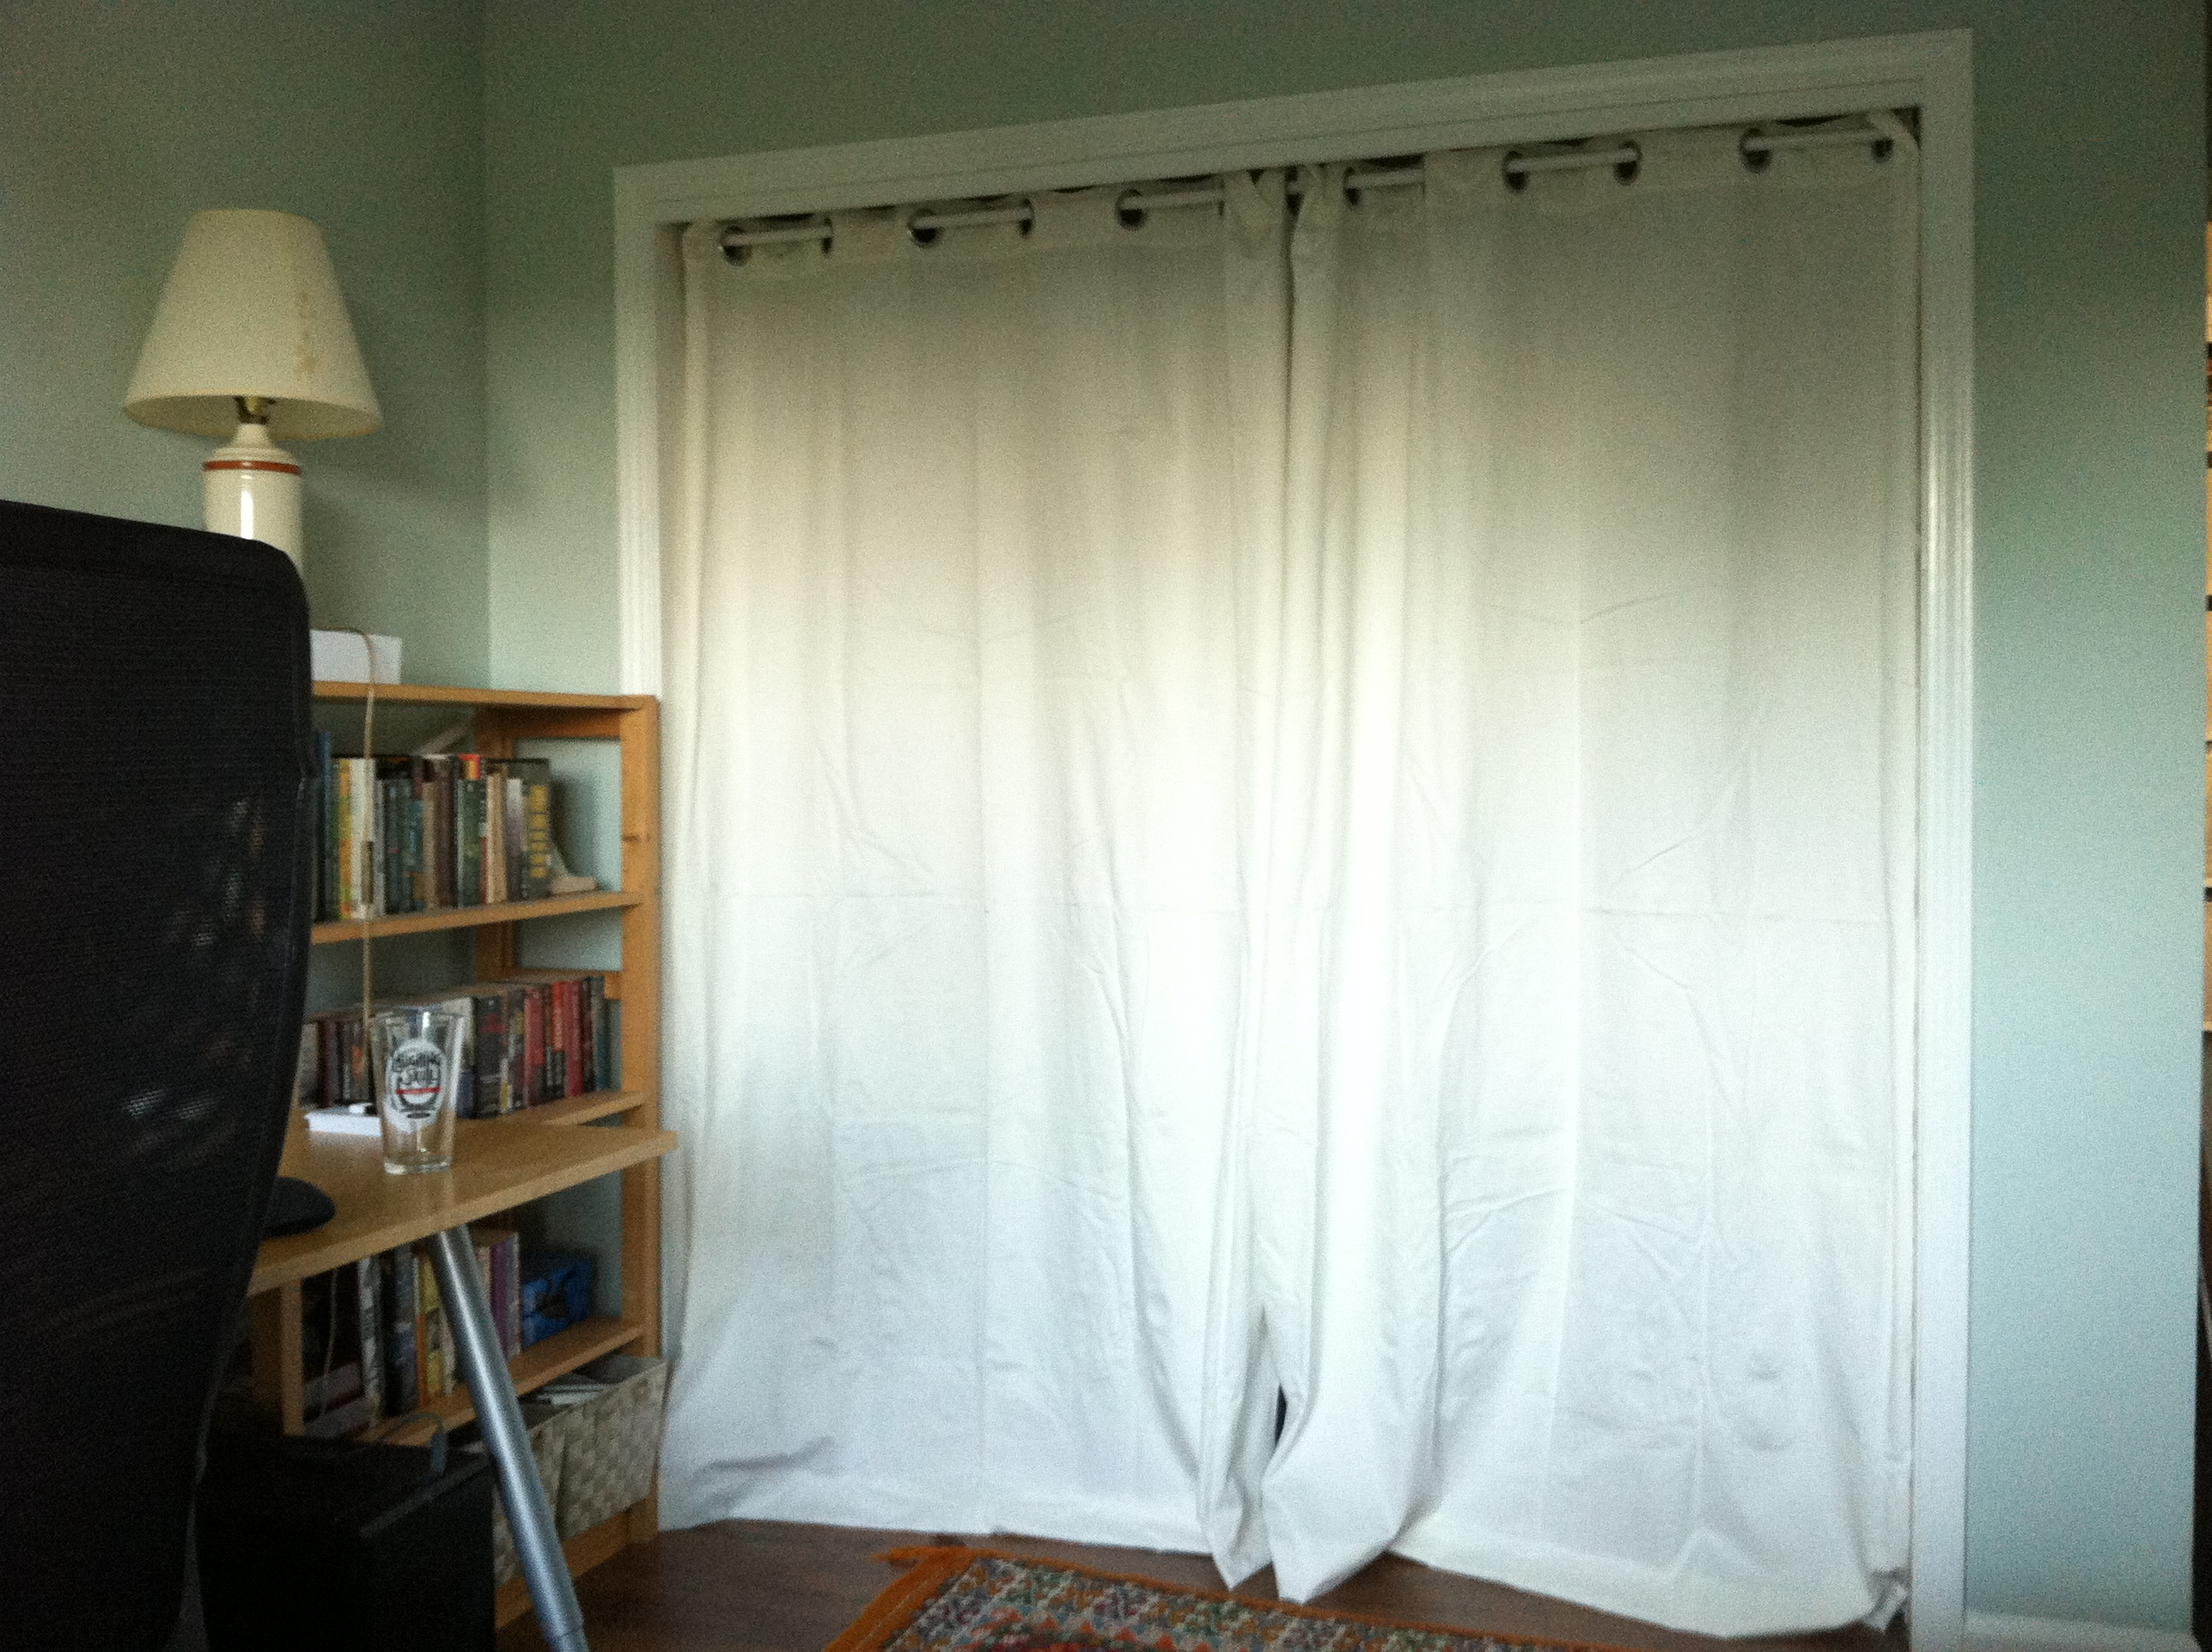 Closet Beads Curtains Likable Closet Curtains Tumblr Home Decor